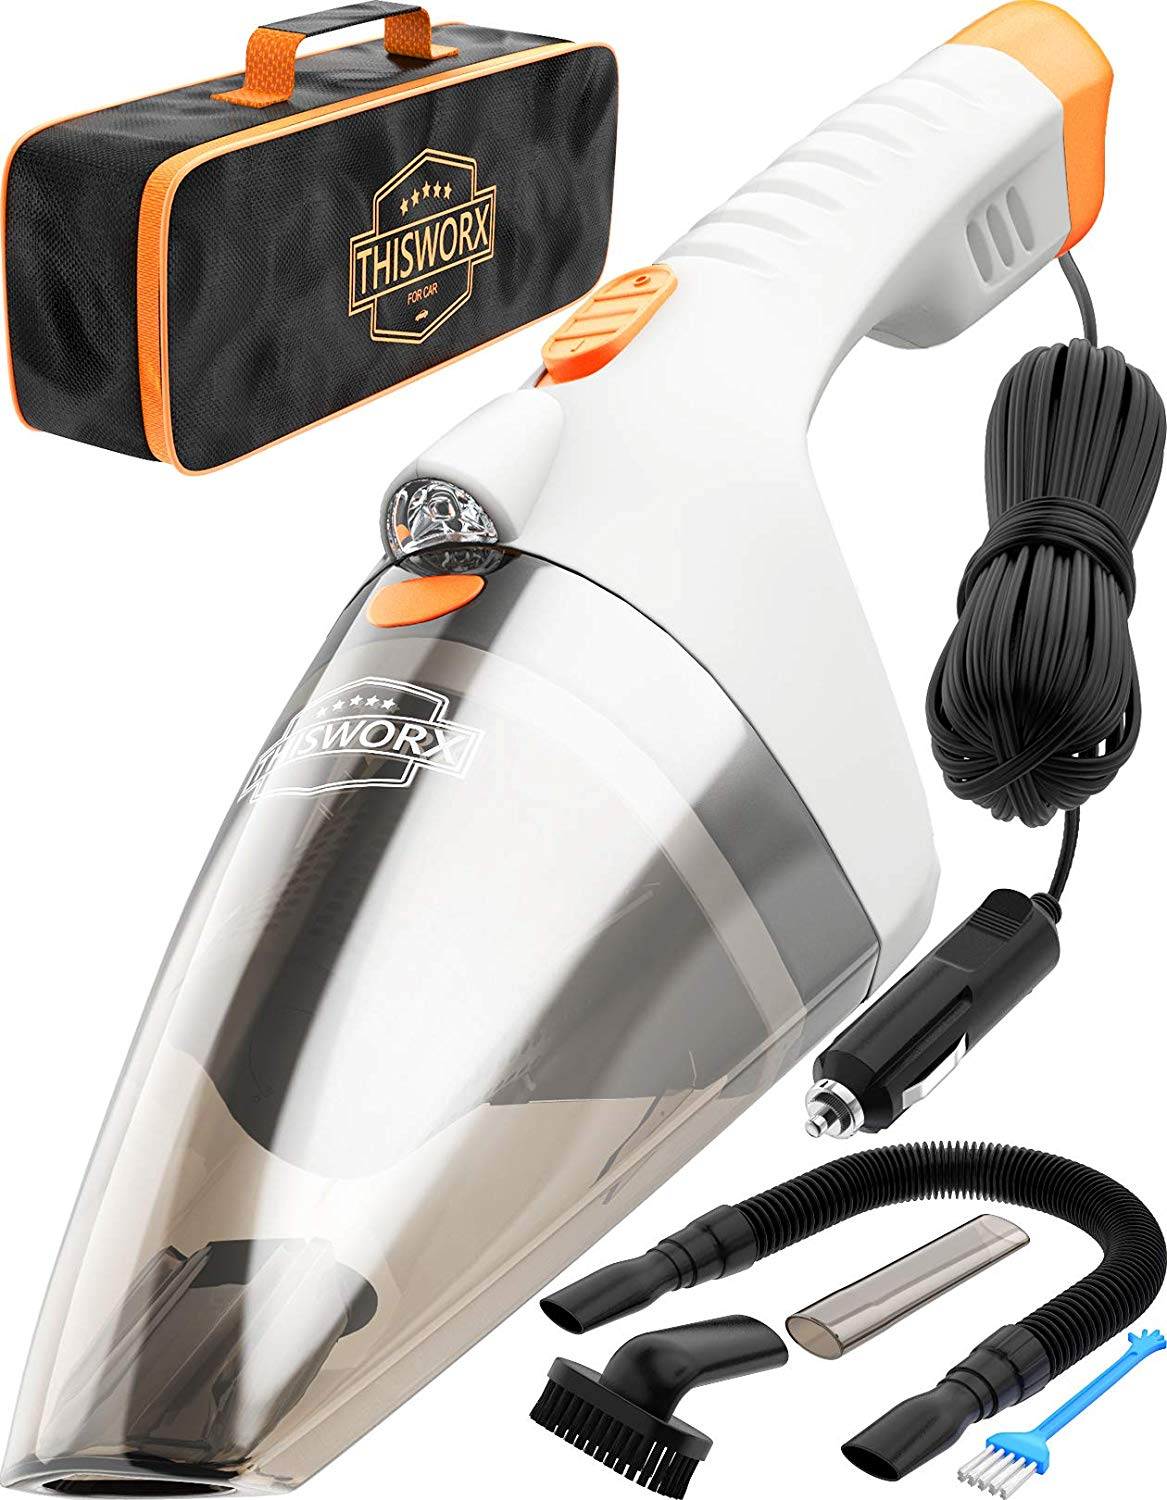 Car Vacuum Cleaner High Power - 110W 12v Corded auto Portable Vacuum Cleaner for Car Interior Cleaning